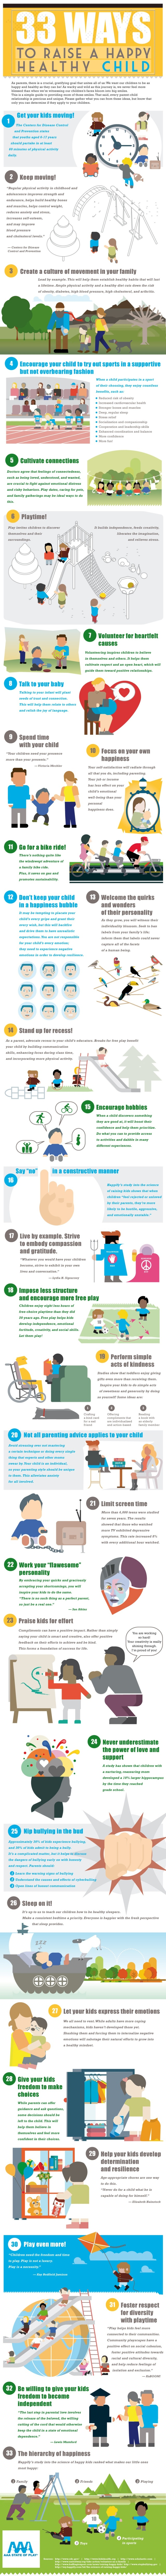 33 Tips for Raising Happy Kids - shared by AAA State of Play